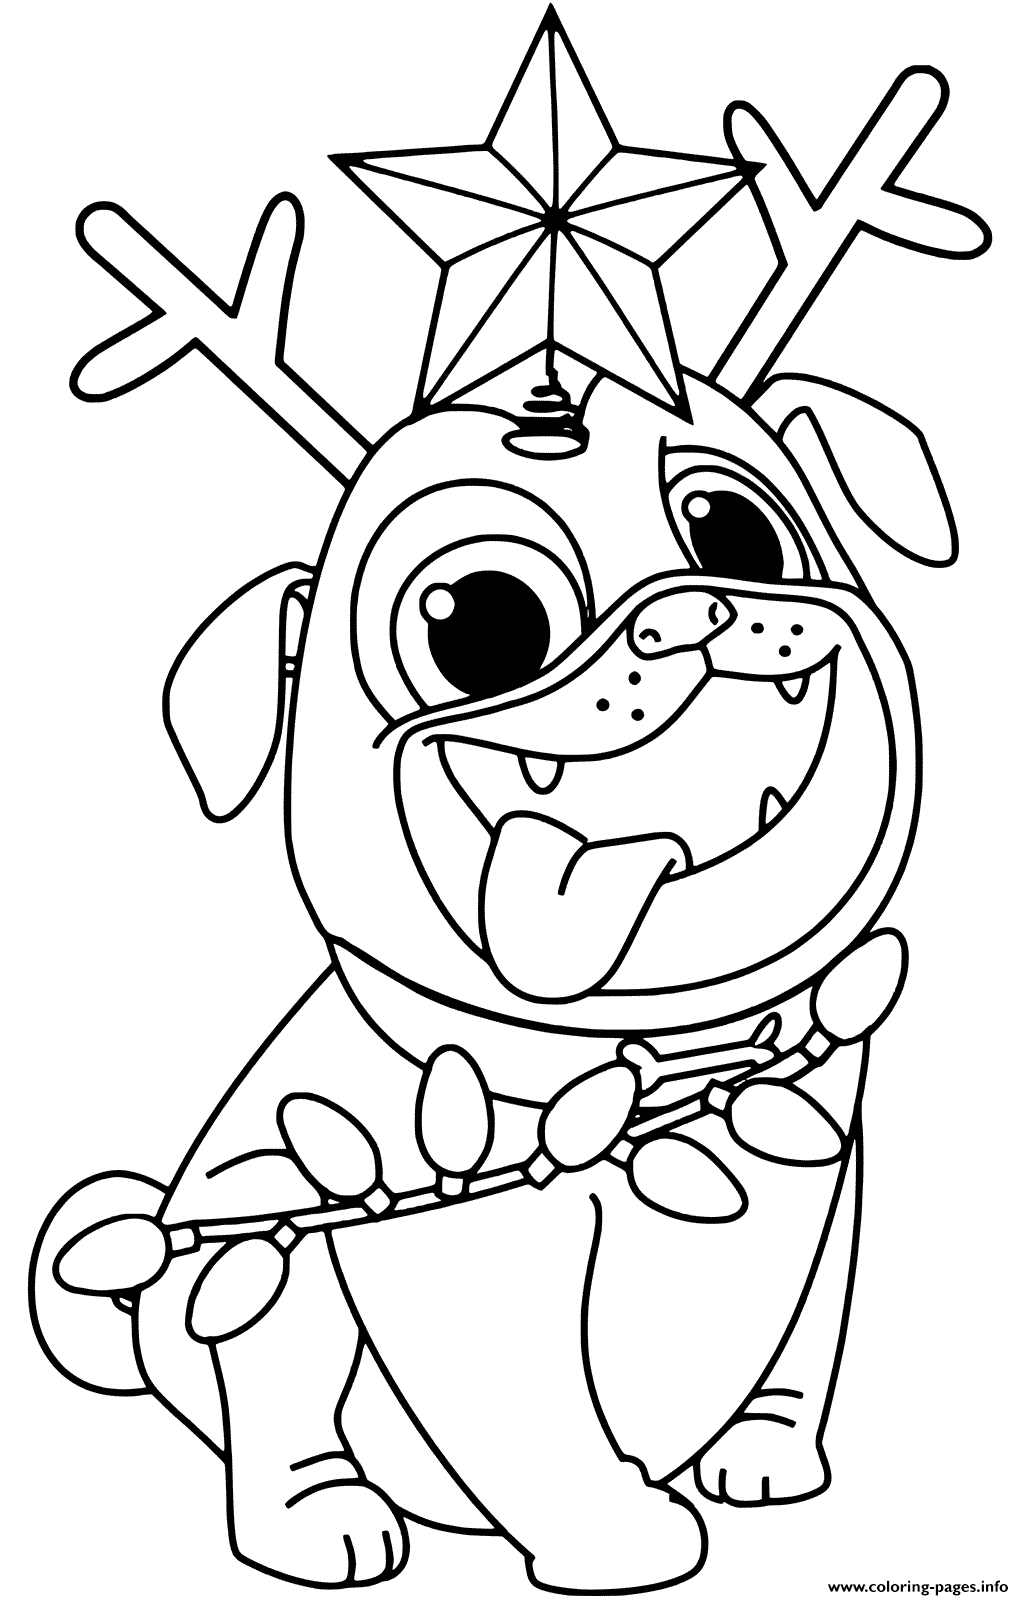 Christmas Tree Puppy Dog Pals Rolly Printable Coloring ...